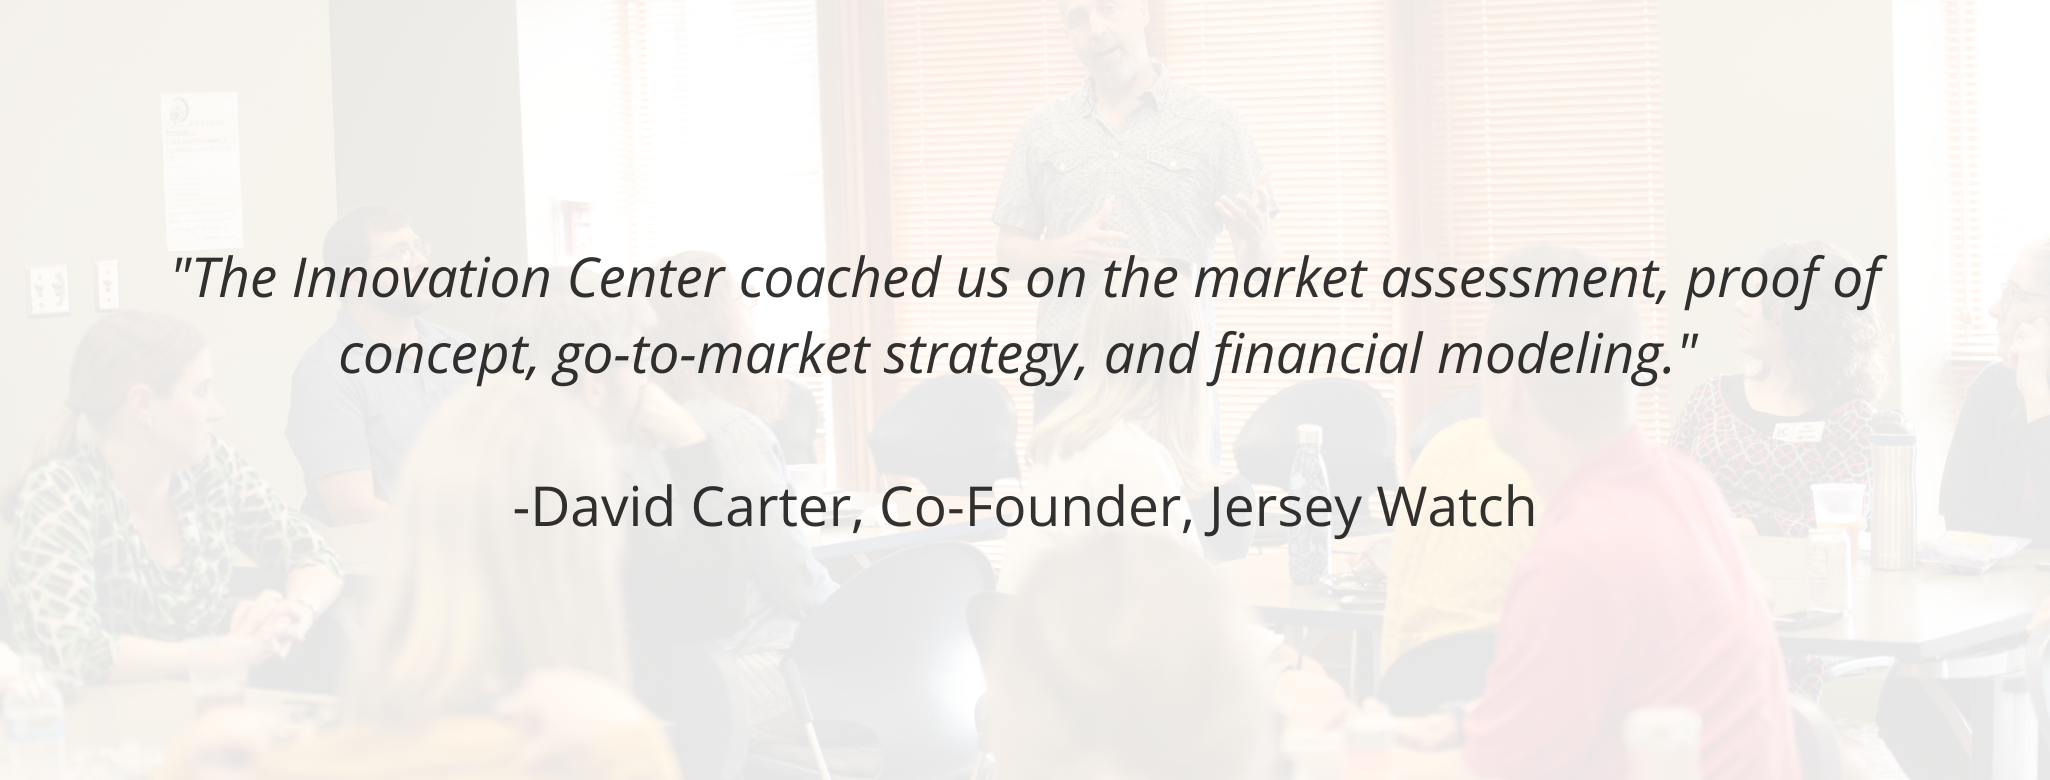 """""""The Innovation Center coached us on the market assessment, proof of concept, go-to-market strategy, and financial modeling.""""   -David Carter, Co-Founder, Jersey Watch"""